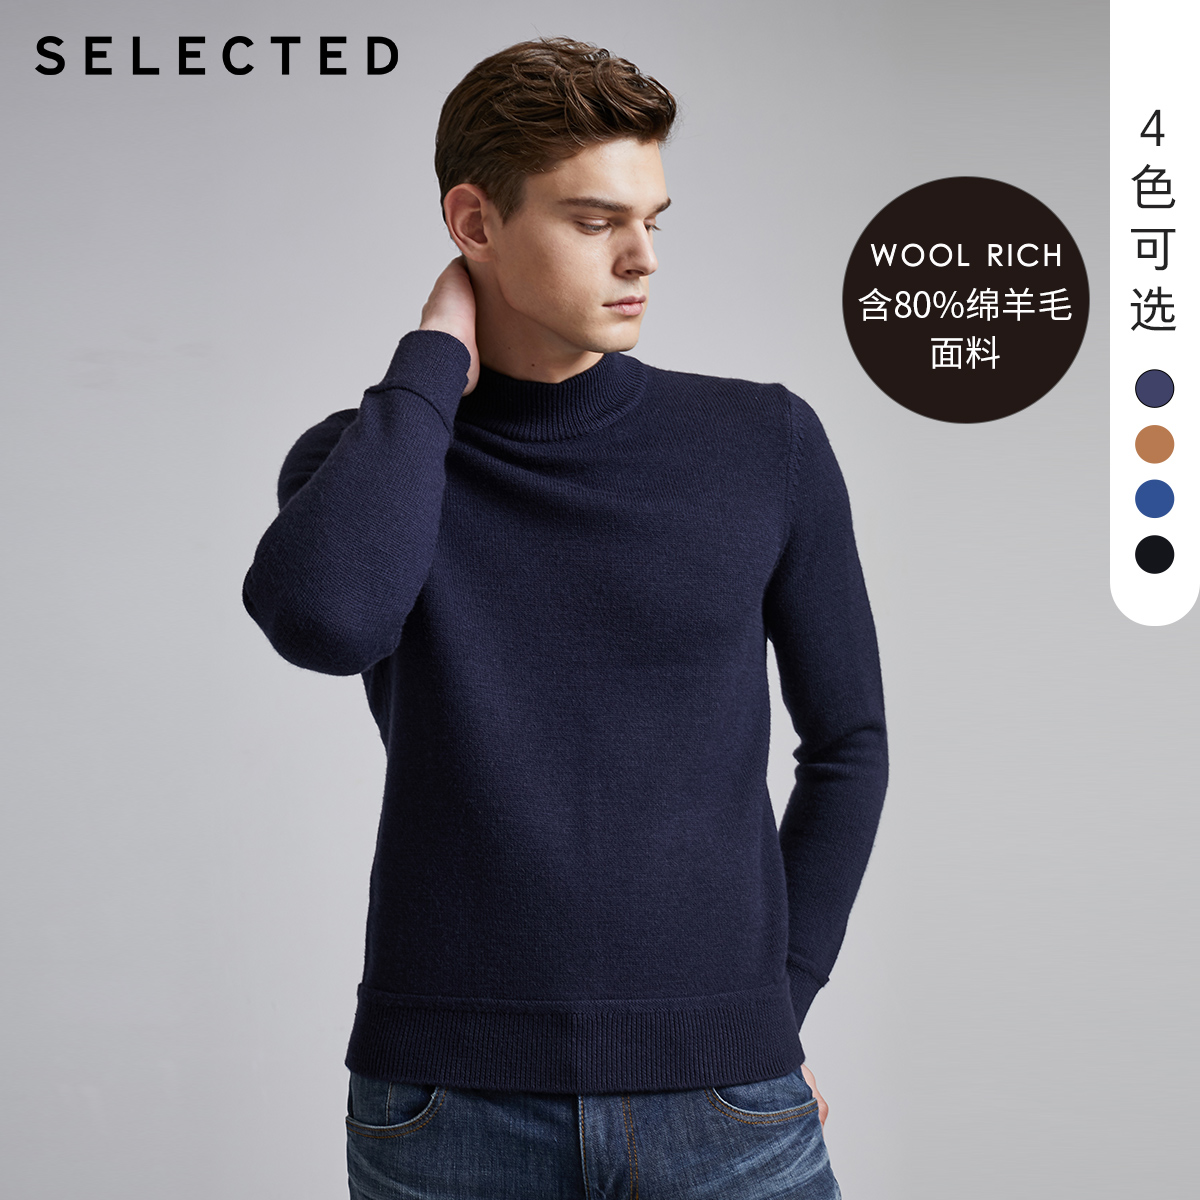 SELECTED Men's Winter Woolen High-necked Pullover Knitted Pure Color Turtleneck Sweater S | 419425527